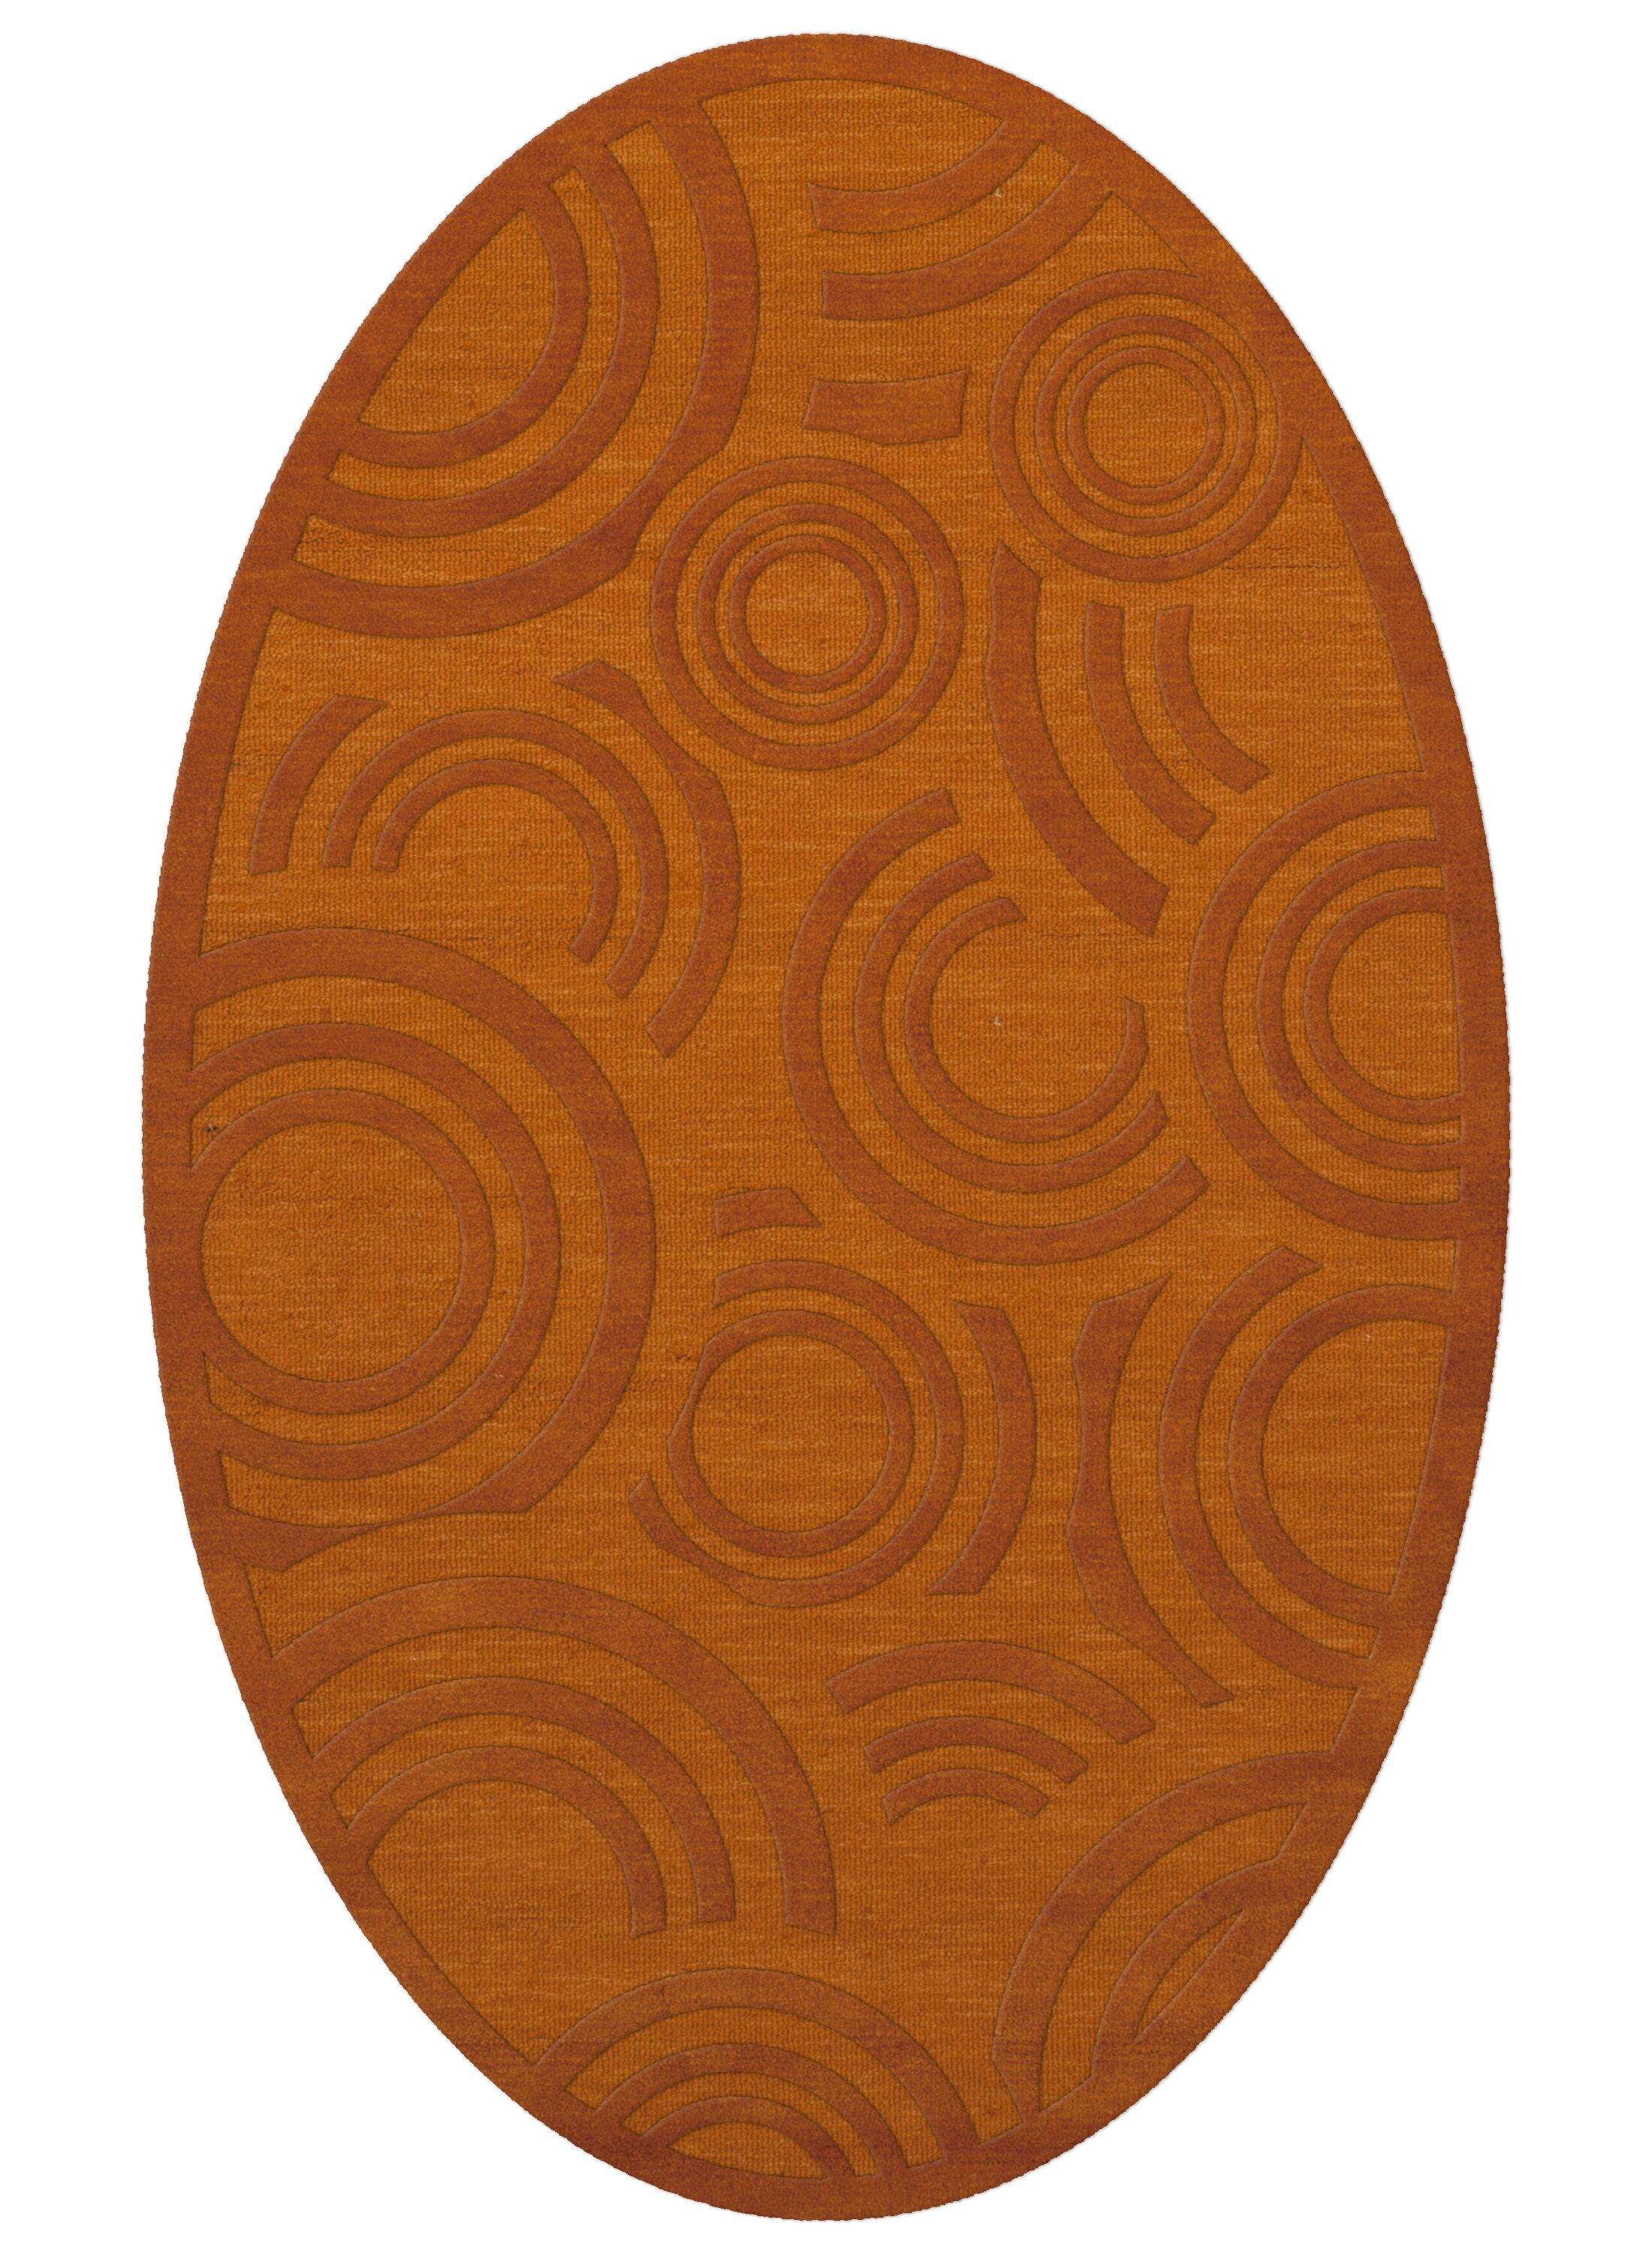 Dover Tufted Wool Orange Area Rug Rug Size: Oval 8' x 10'